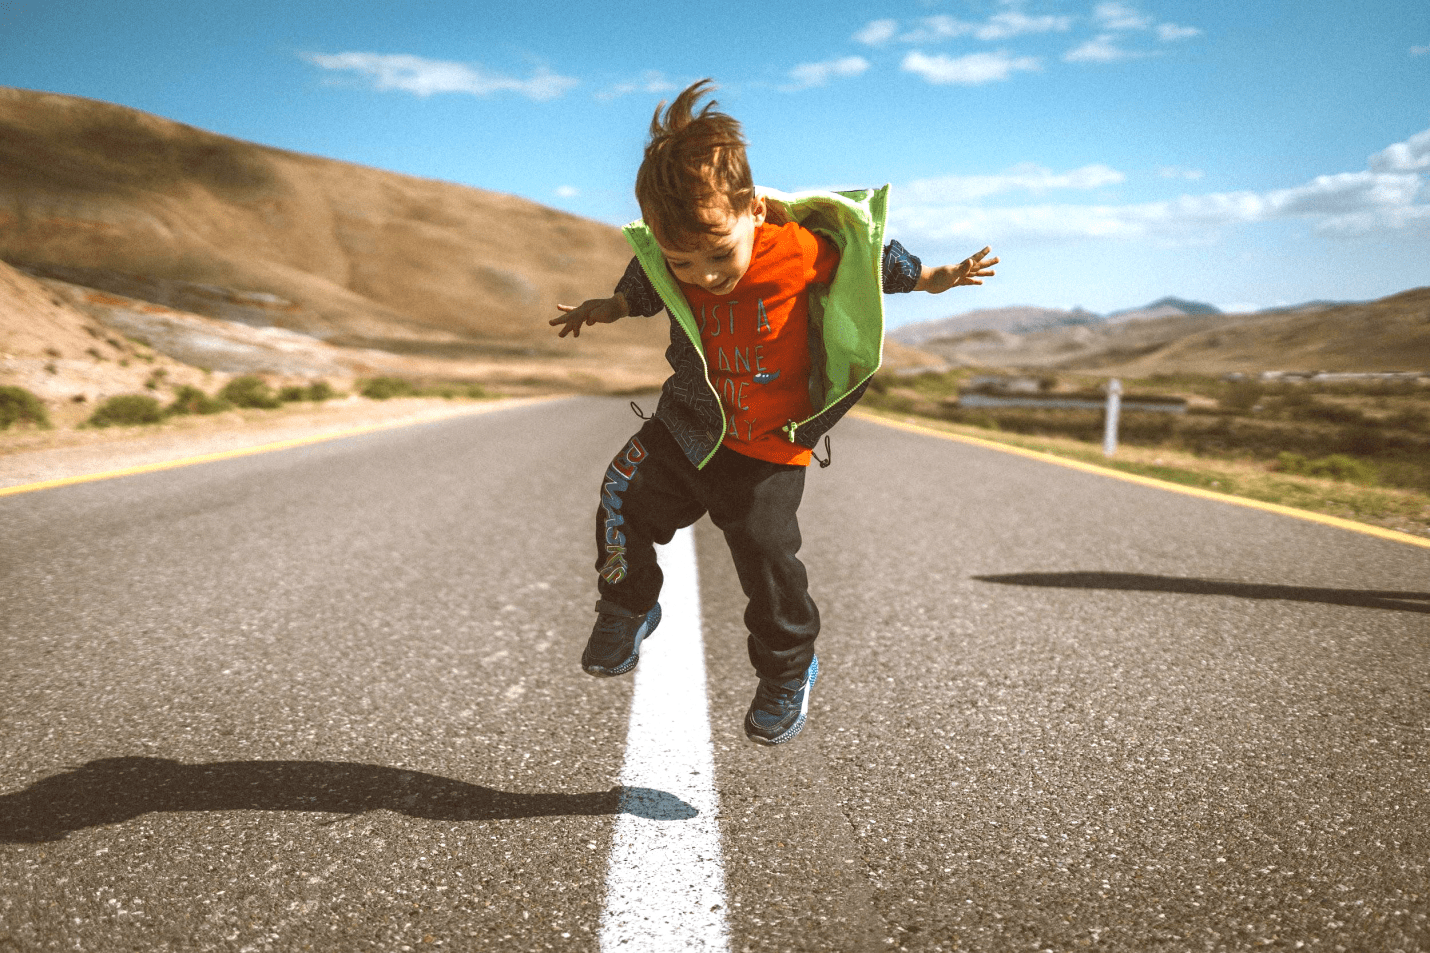 electric-rides-for-kids-a-young-boy-in-a-red-t-shirt-and-green-jacket-jumping-in-the-middle-of-the-road